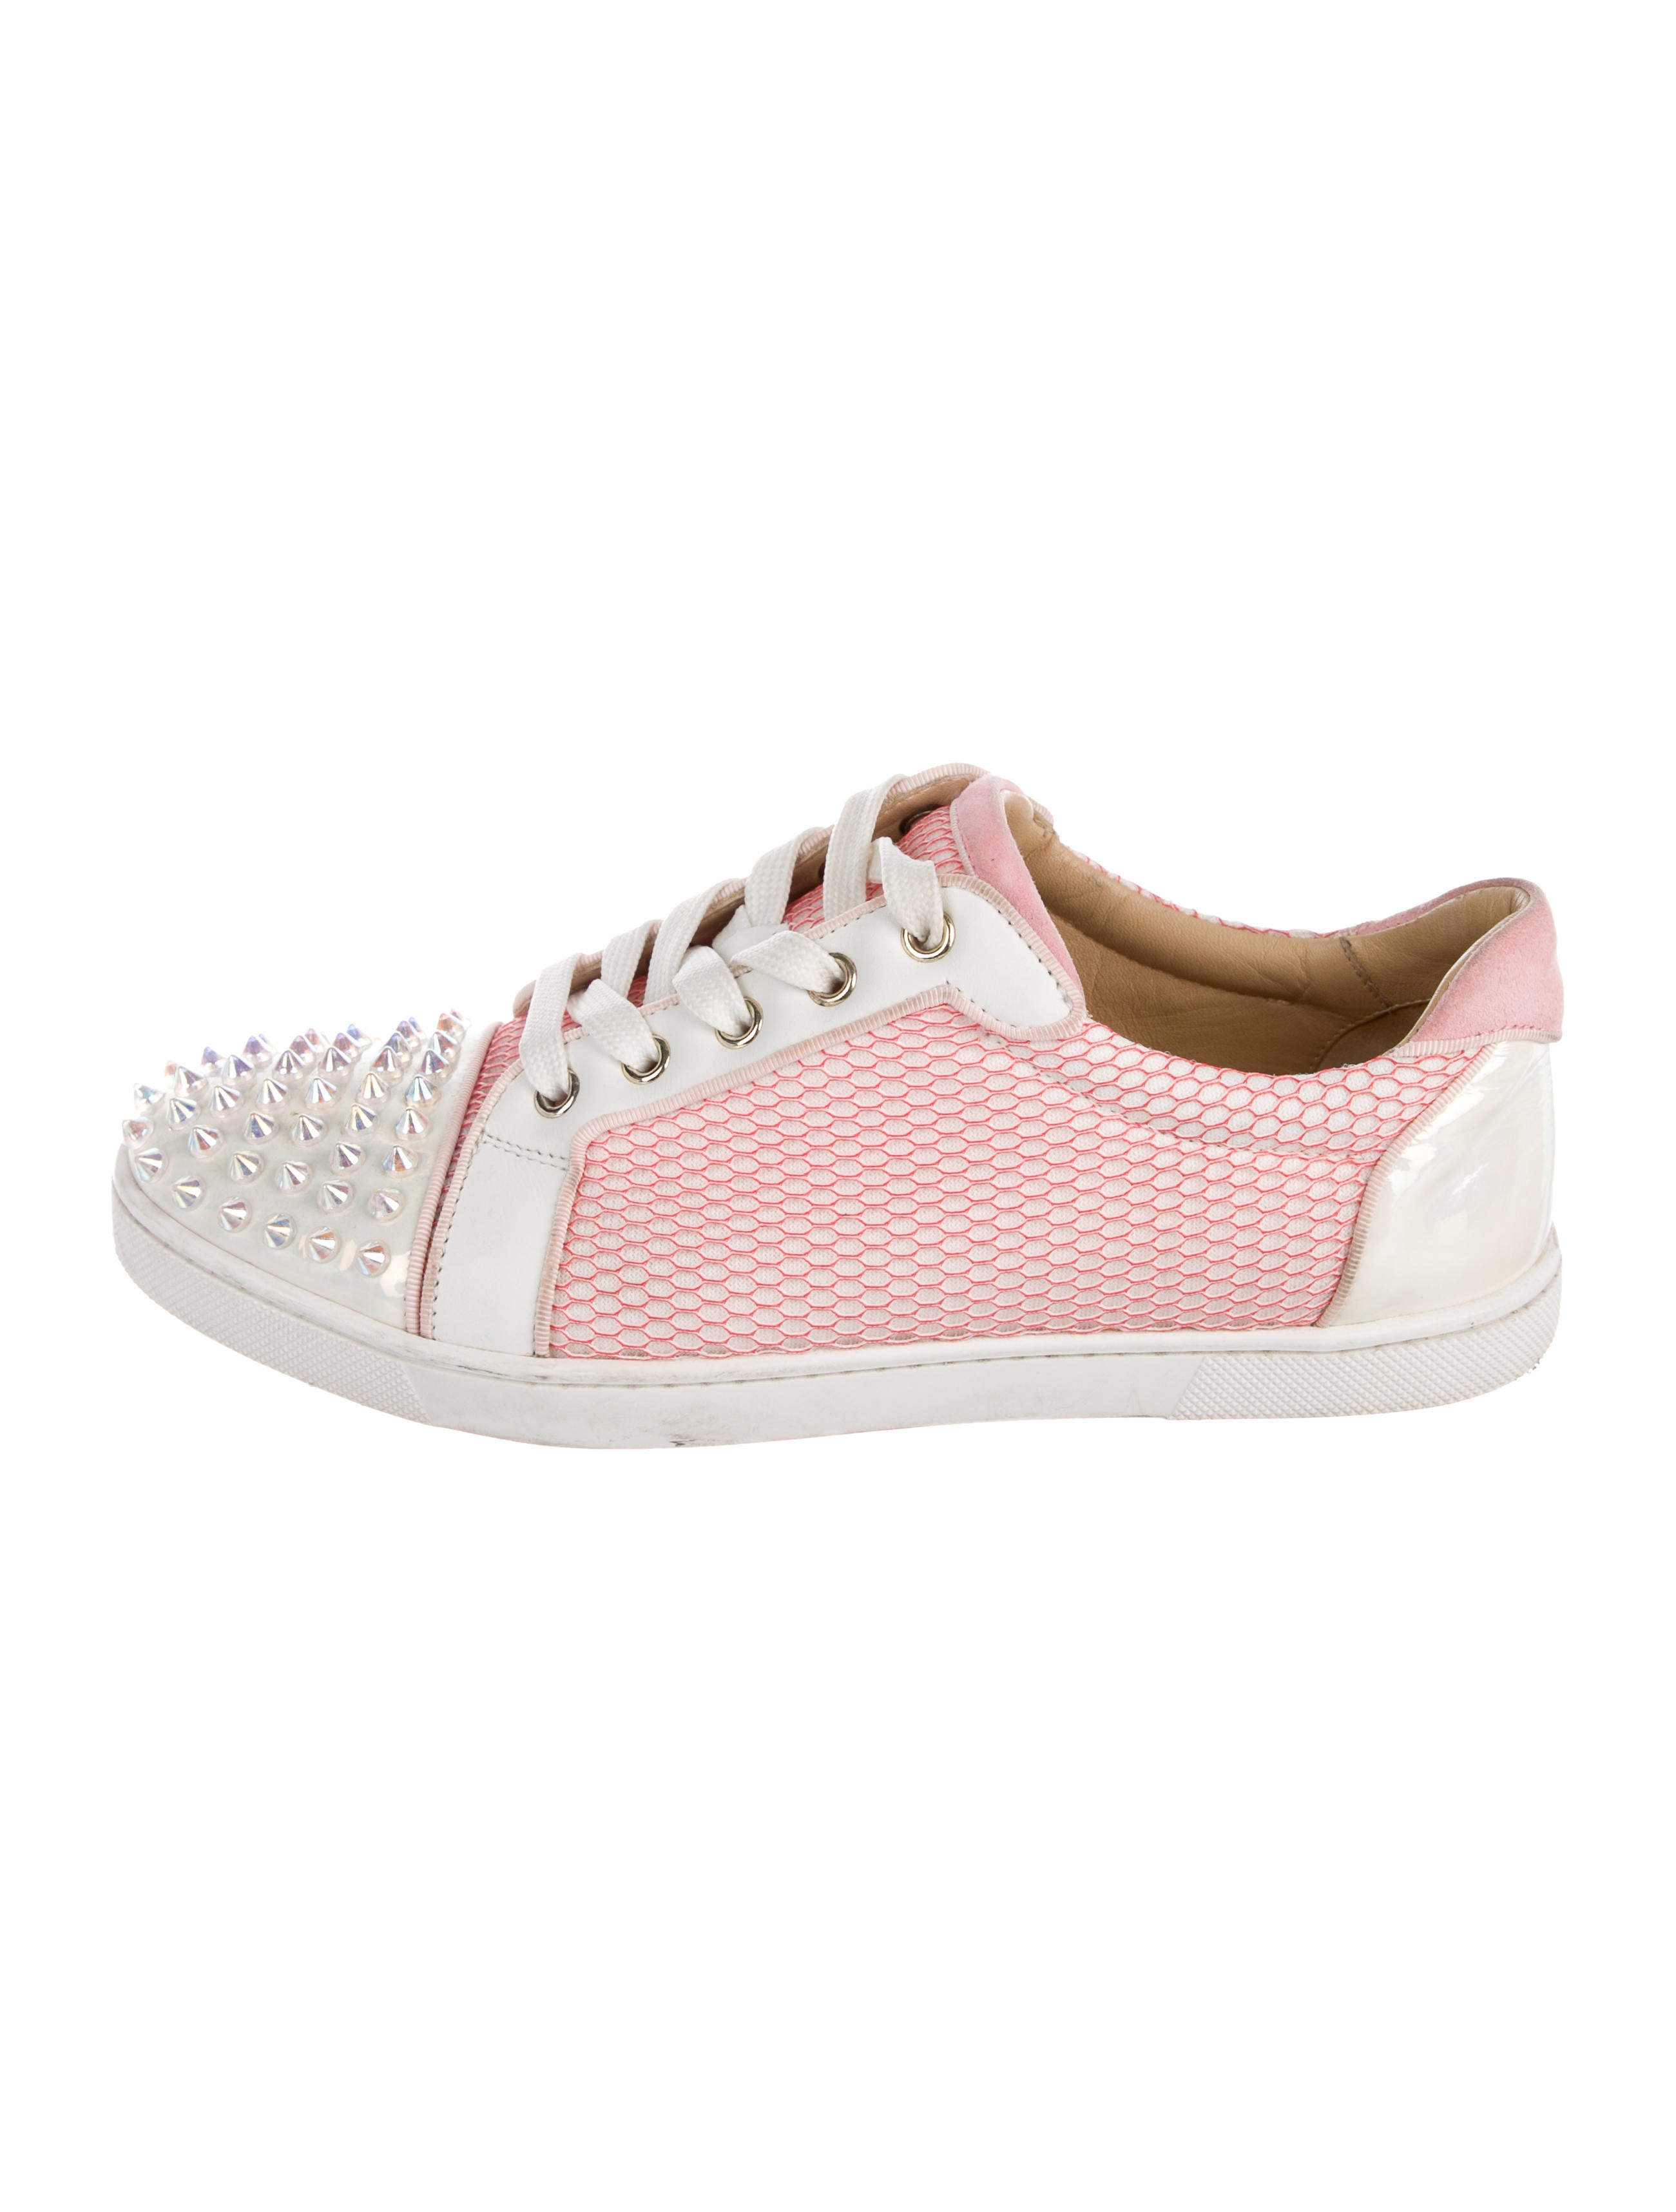 dd34c409bb5 Christian Louboutin Gondolita Spike Sneakers - Shoes - CHT111527 ...